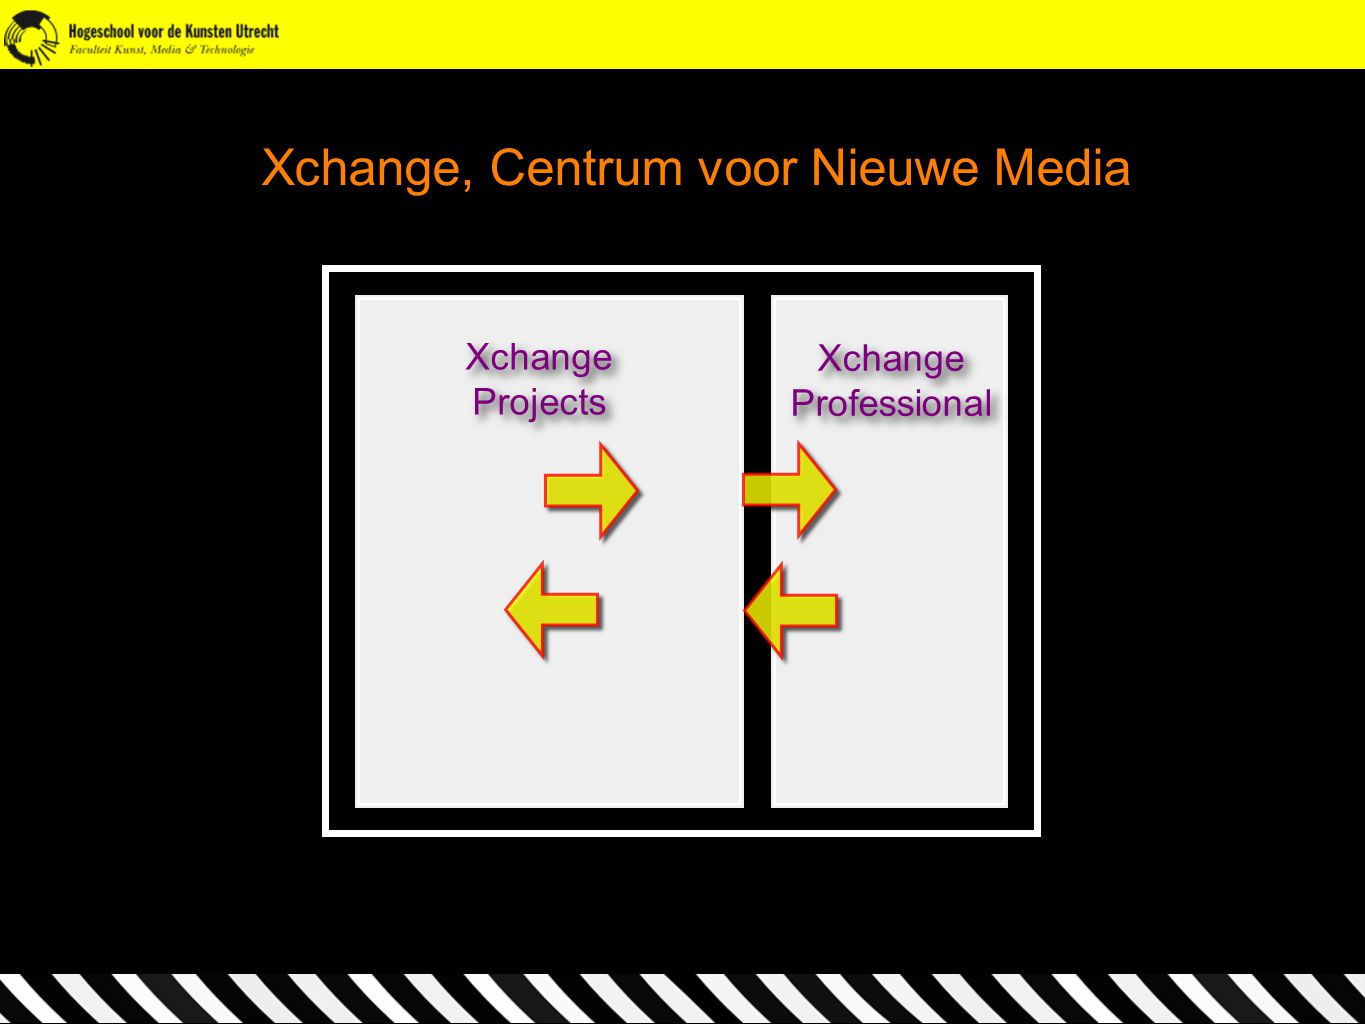 Xchange, Centrum voor Nieuwe Media Xchange Projects Xchange Projects Xchange Professional Xchange Professional